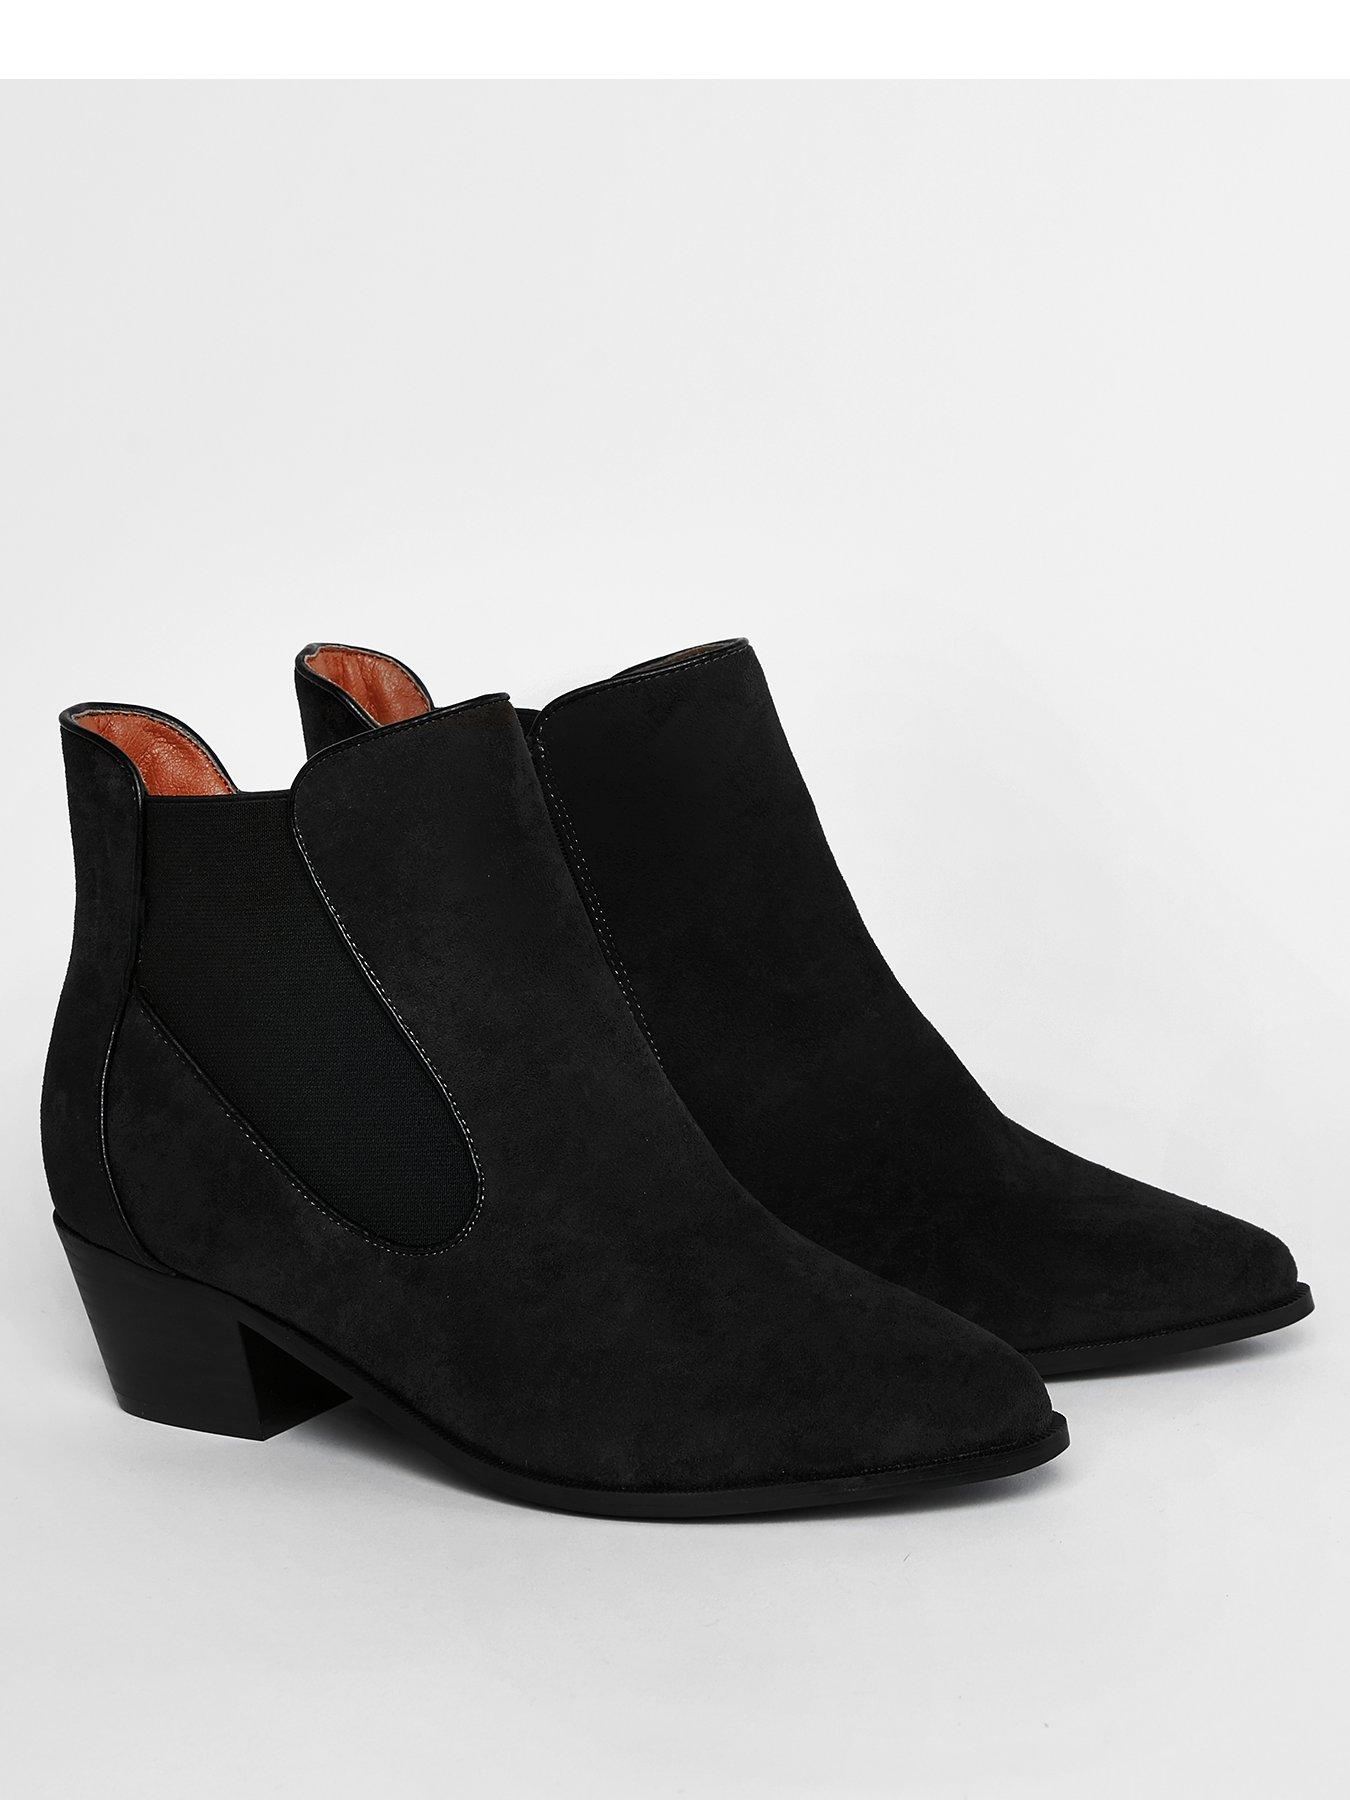 Ankle Boots   Black   Casual   Clothing